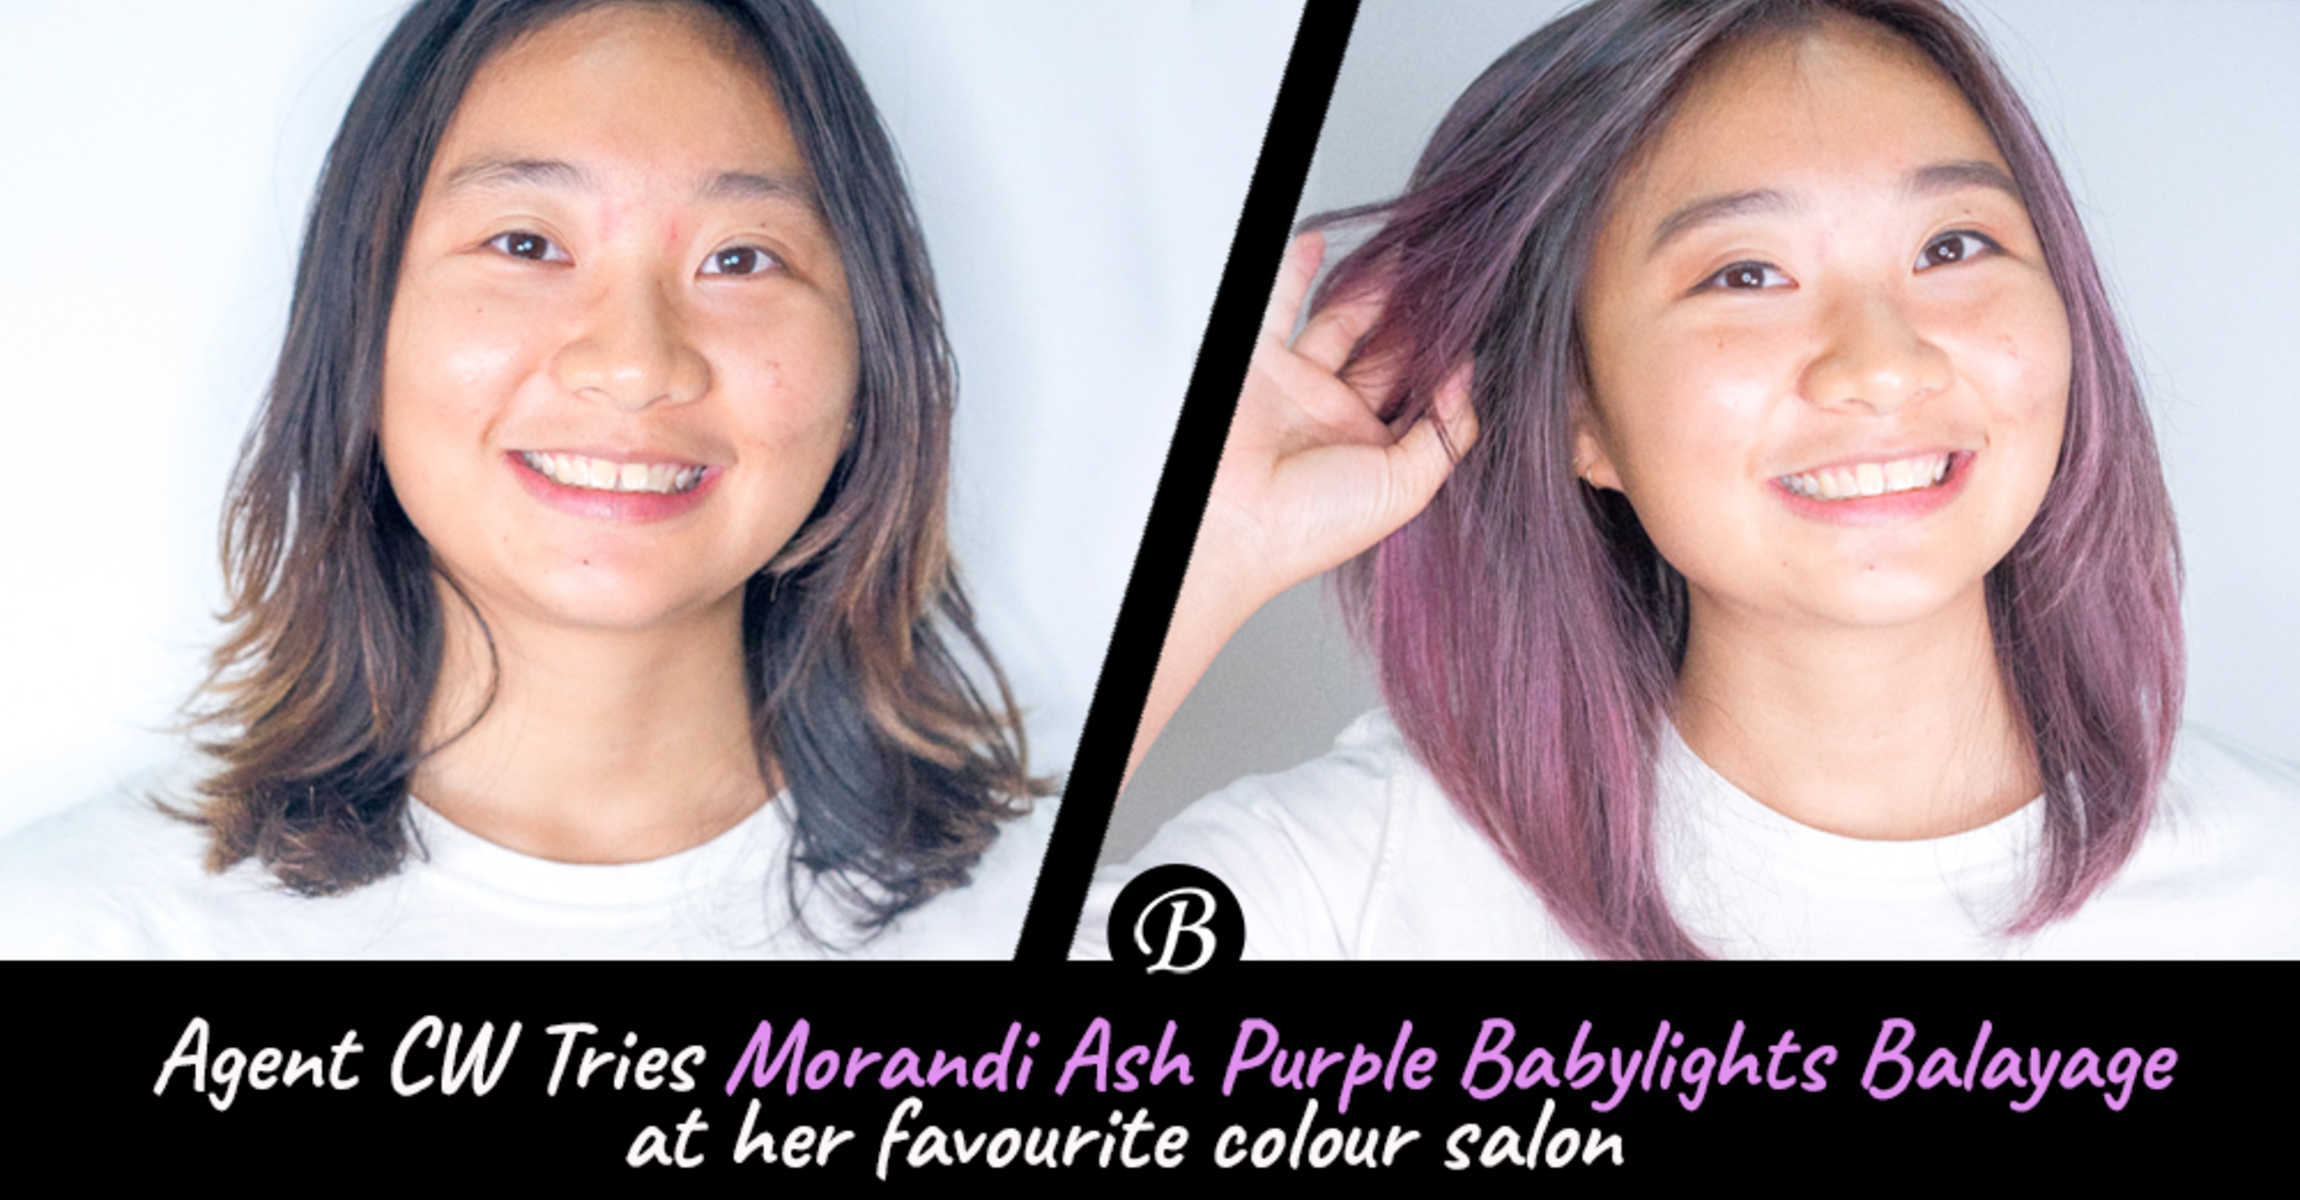 Agent CW Refreshed Her Balayage with Ash Purple Babylights  at 99 Percent Hair Studio